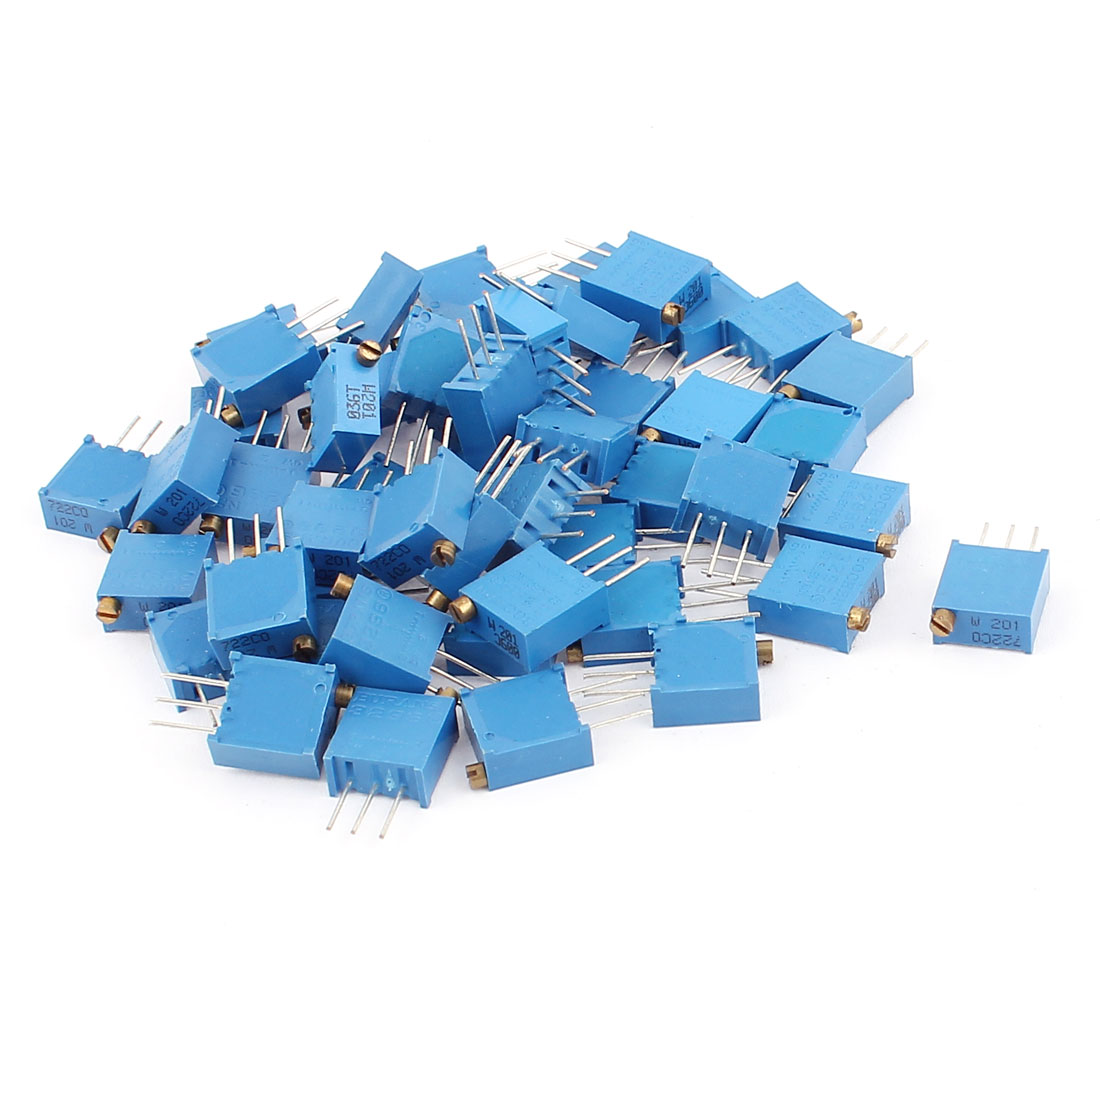 50Pcs 3296W-201 200 Ohm Resistor Trim Pot Potentiometer Trimmer Blue